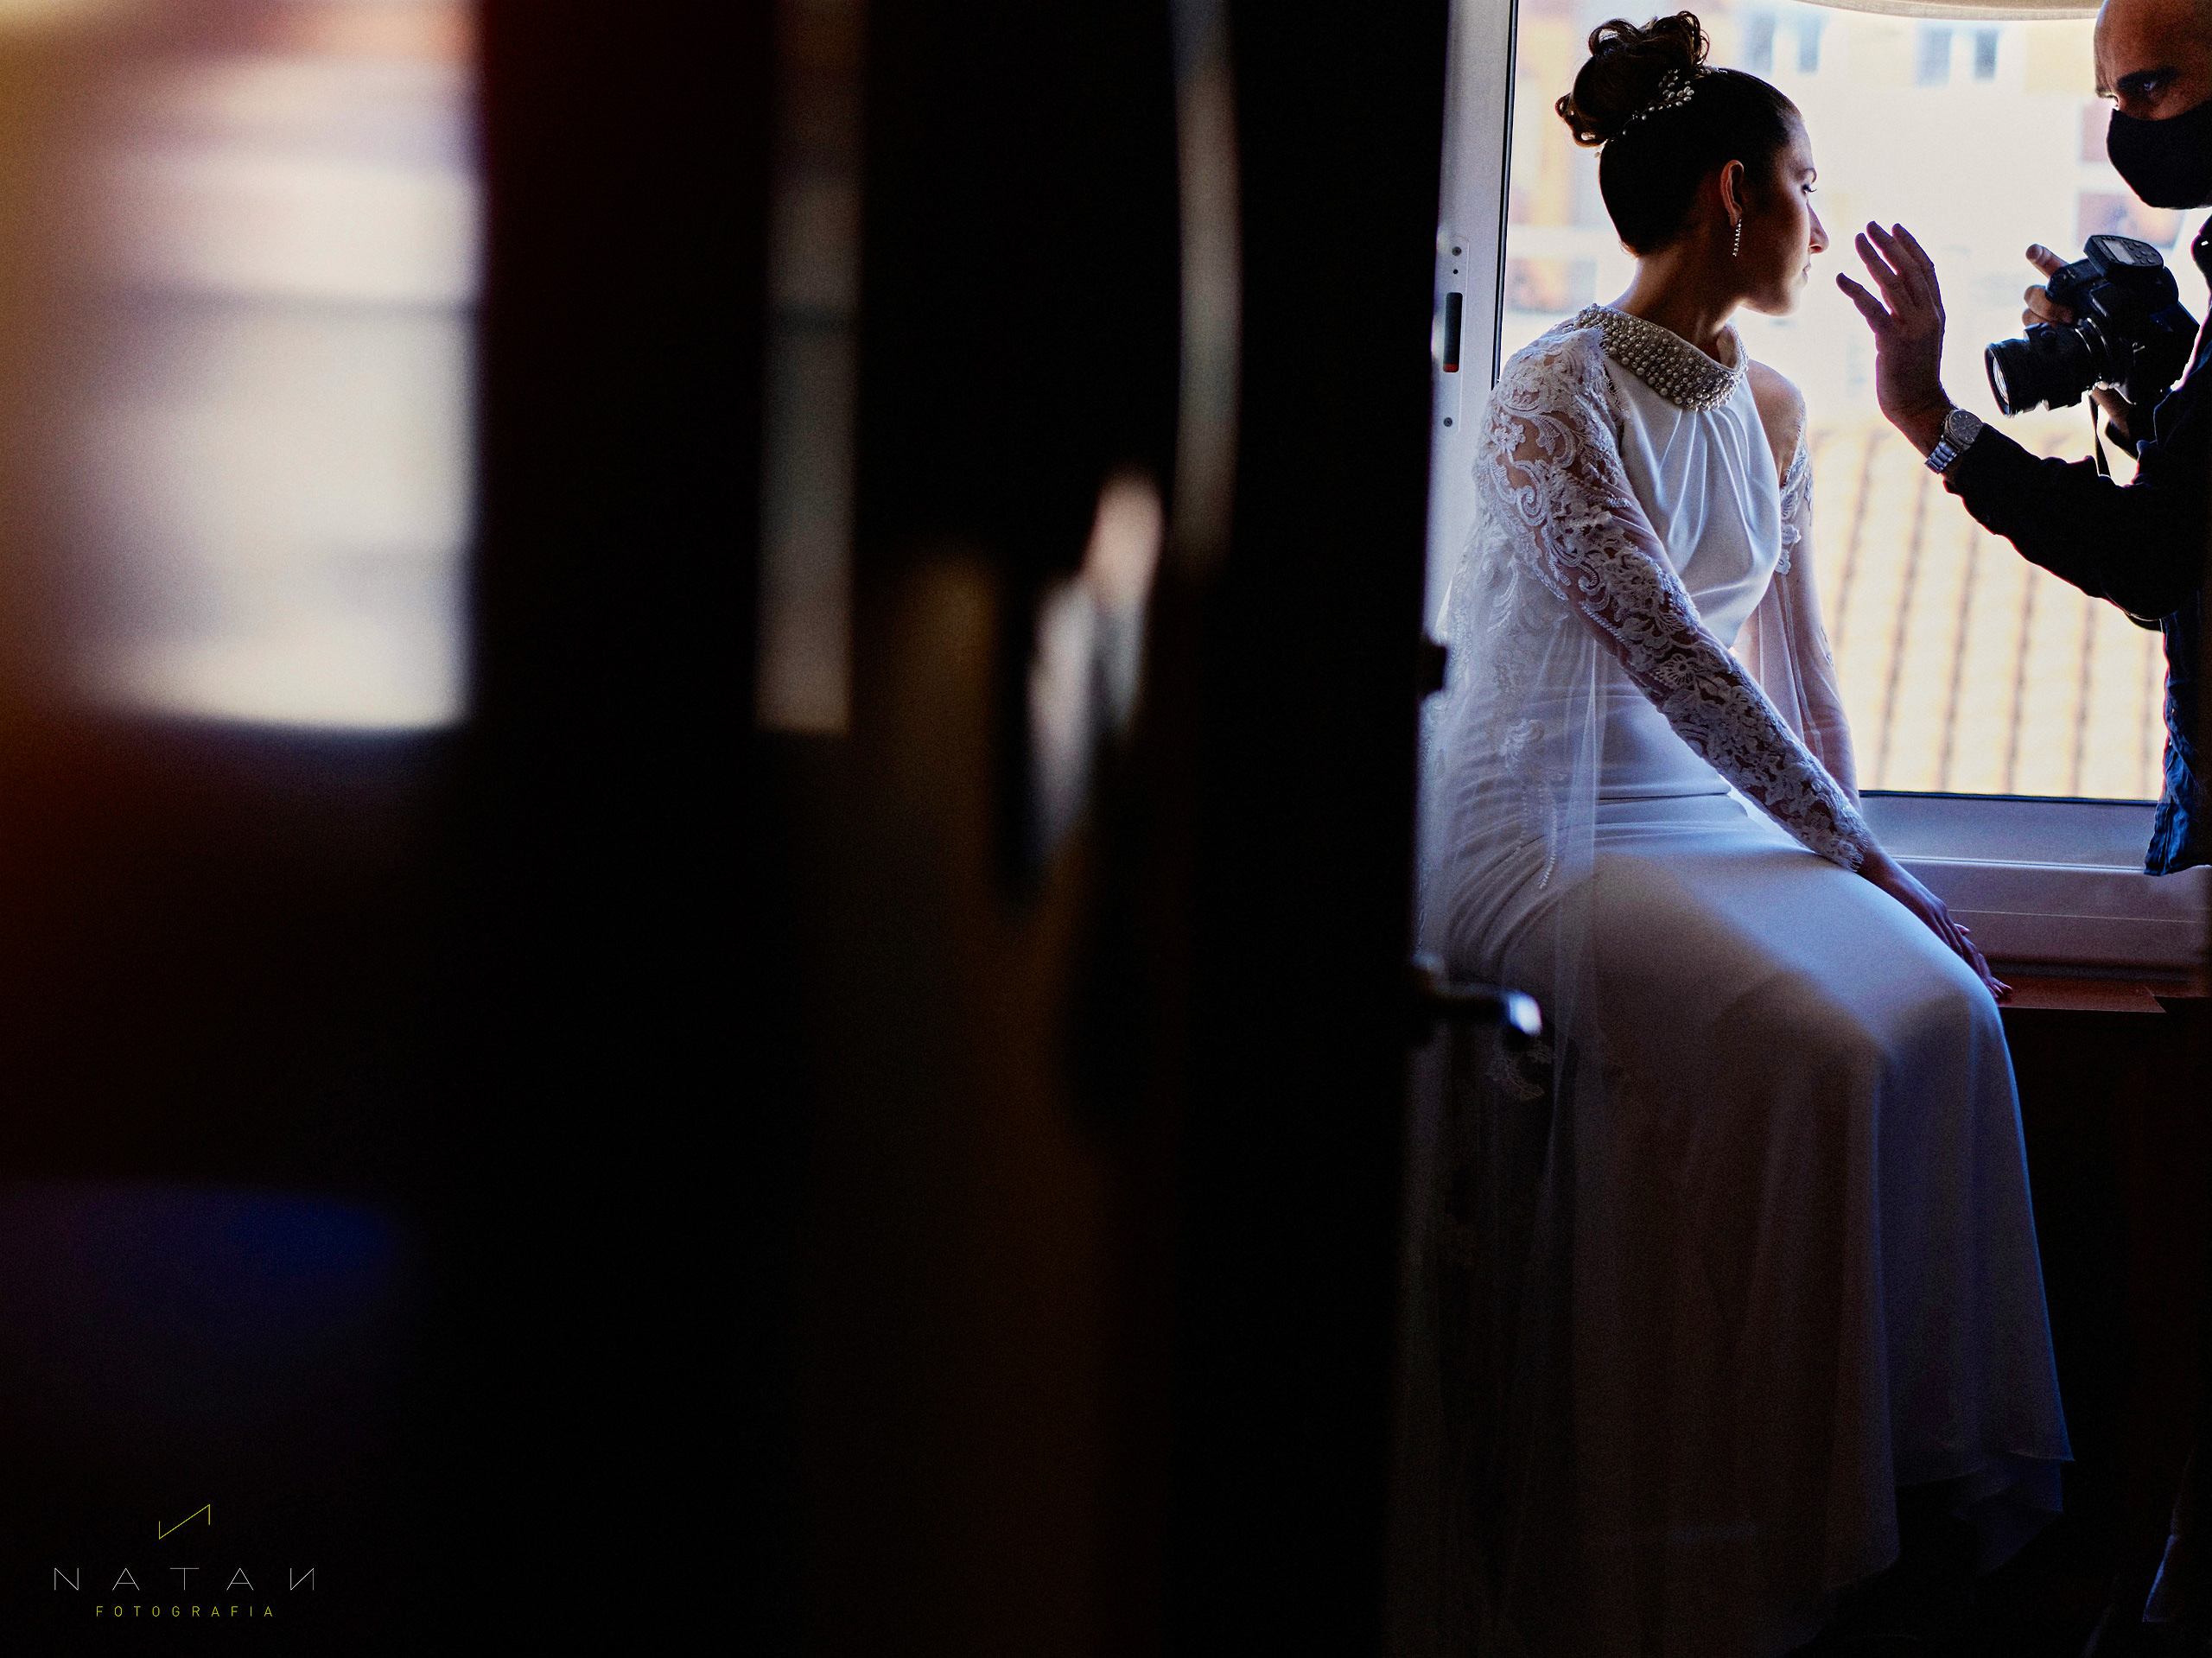 Barcelona Wedding Photographer - Natan Sans